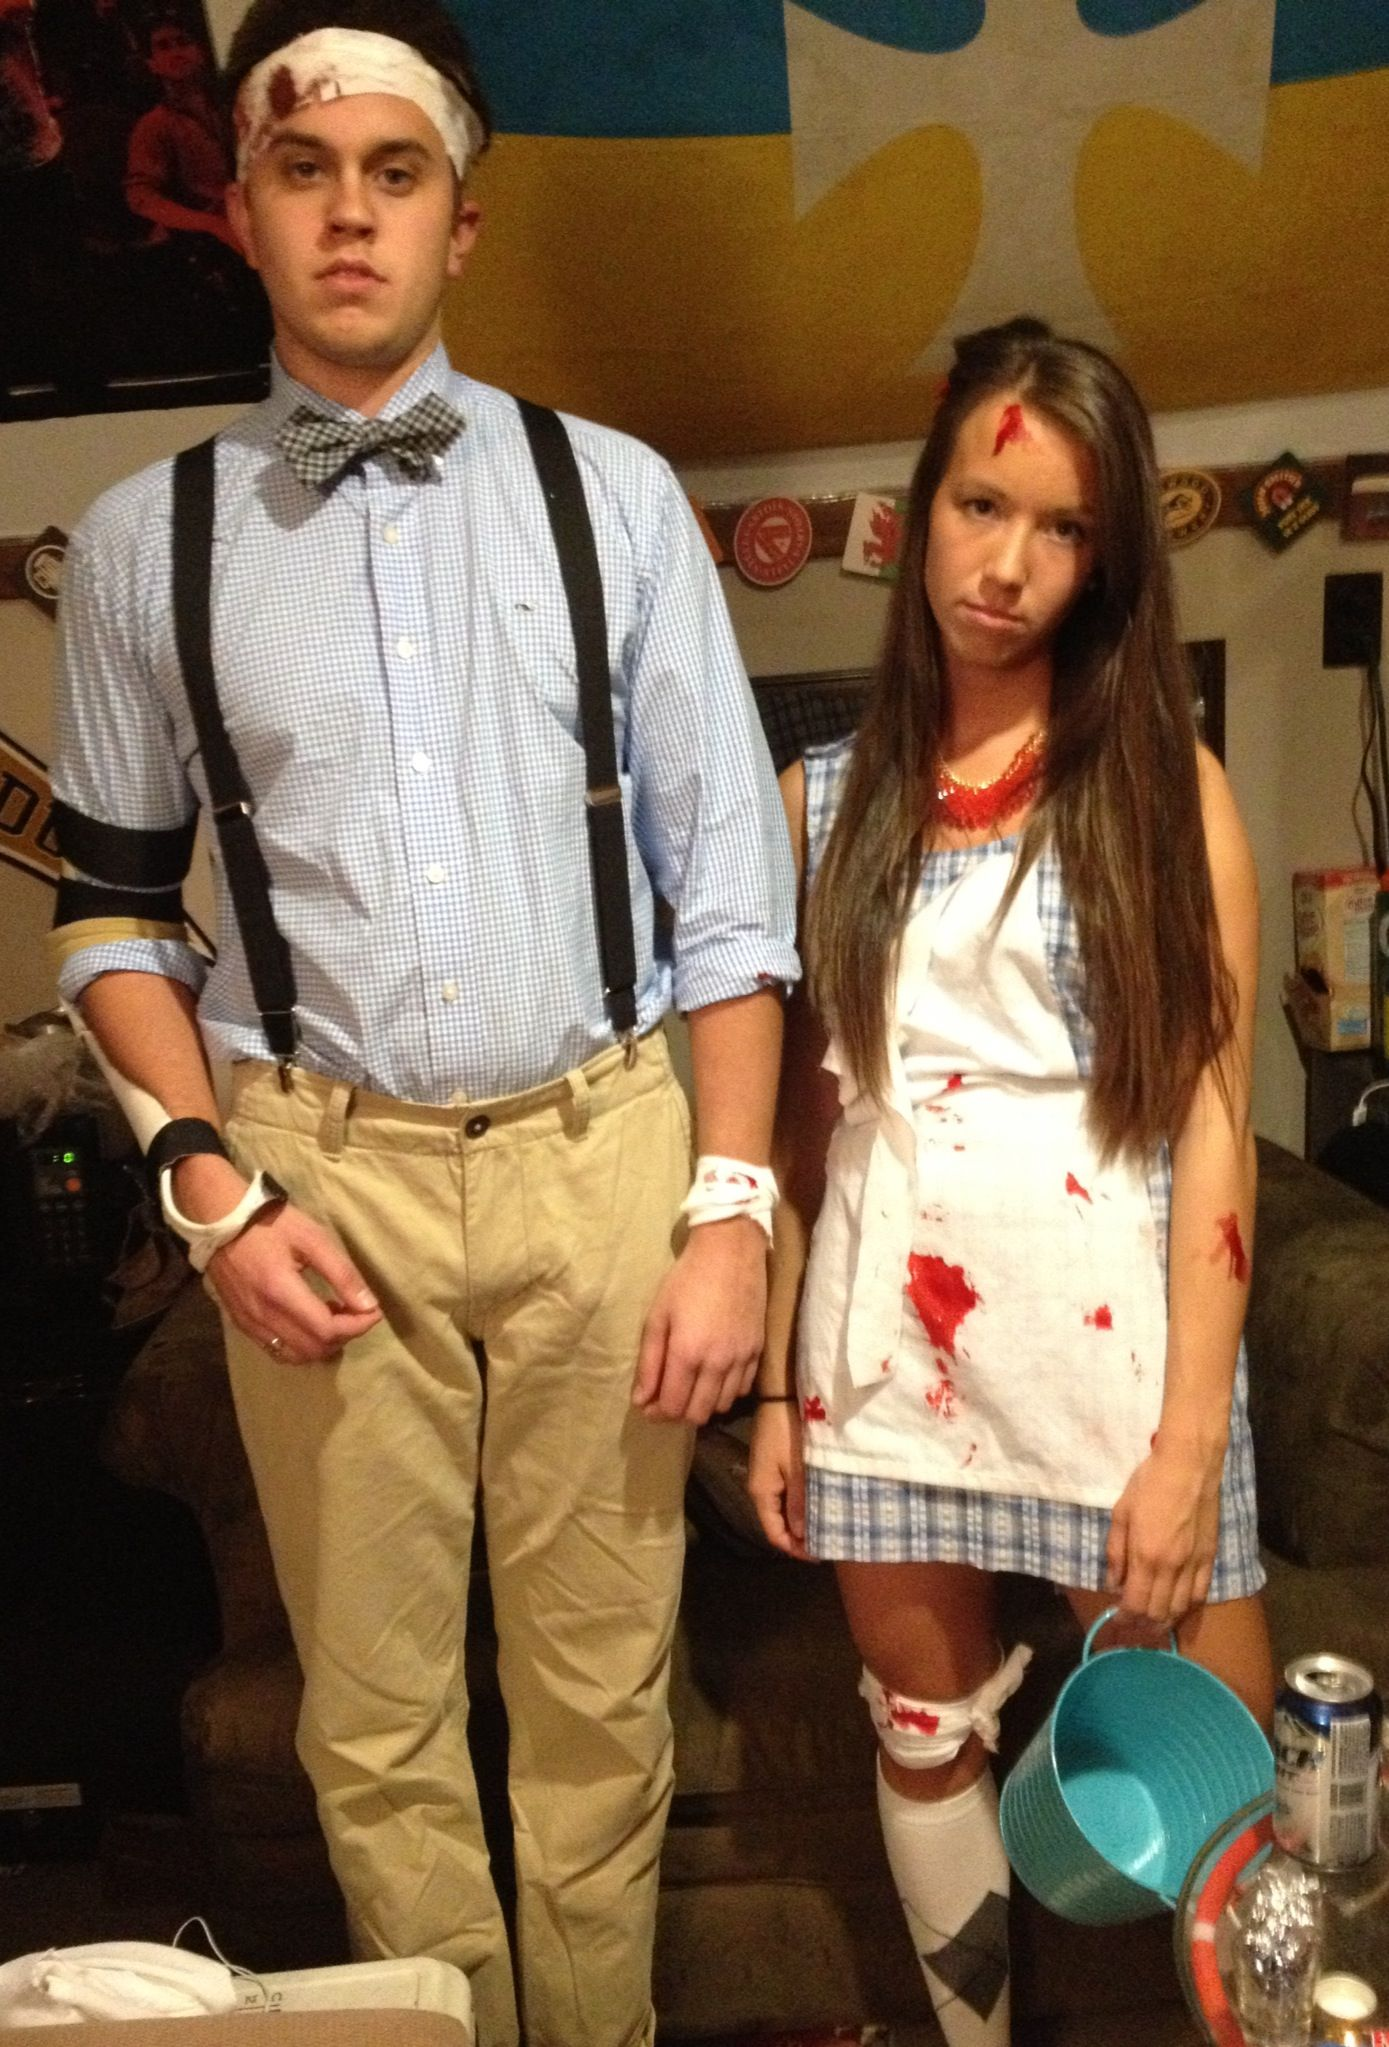 100 Halloween Couples Costumes for You and Your Boo | Jack o ...